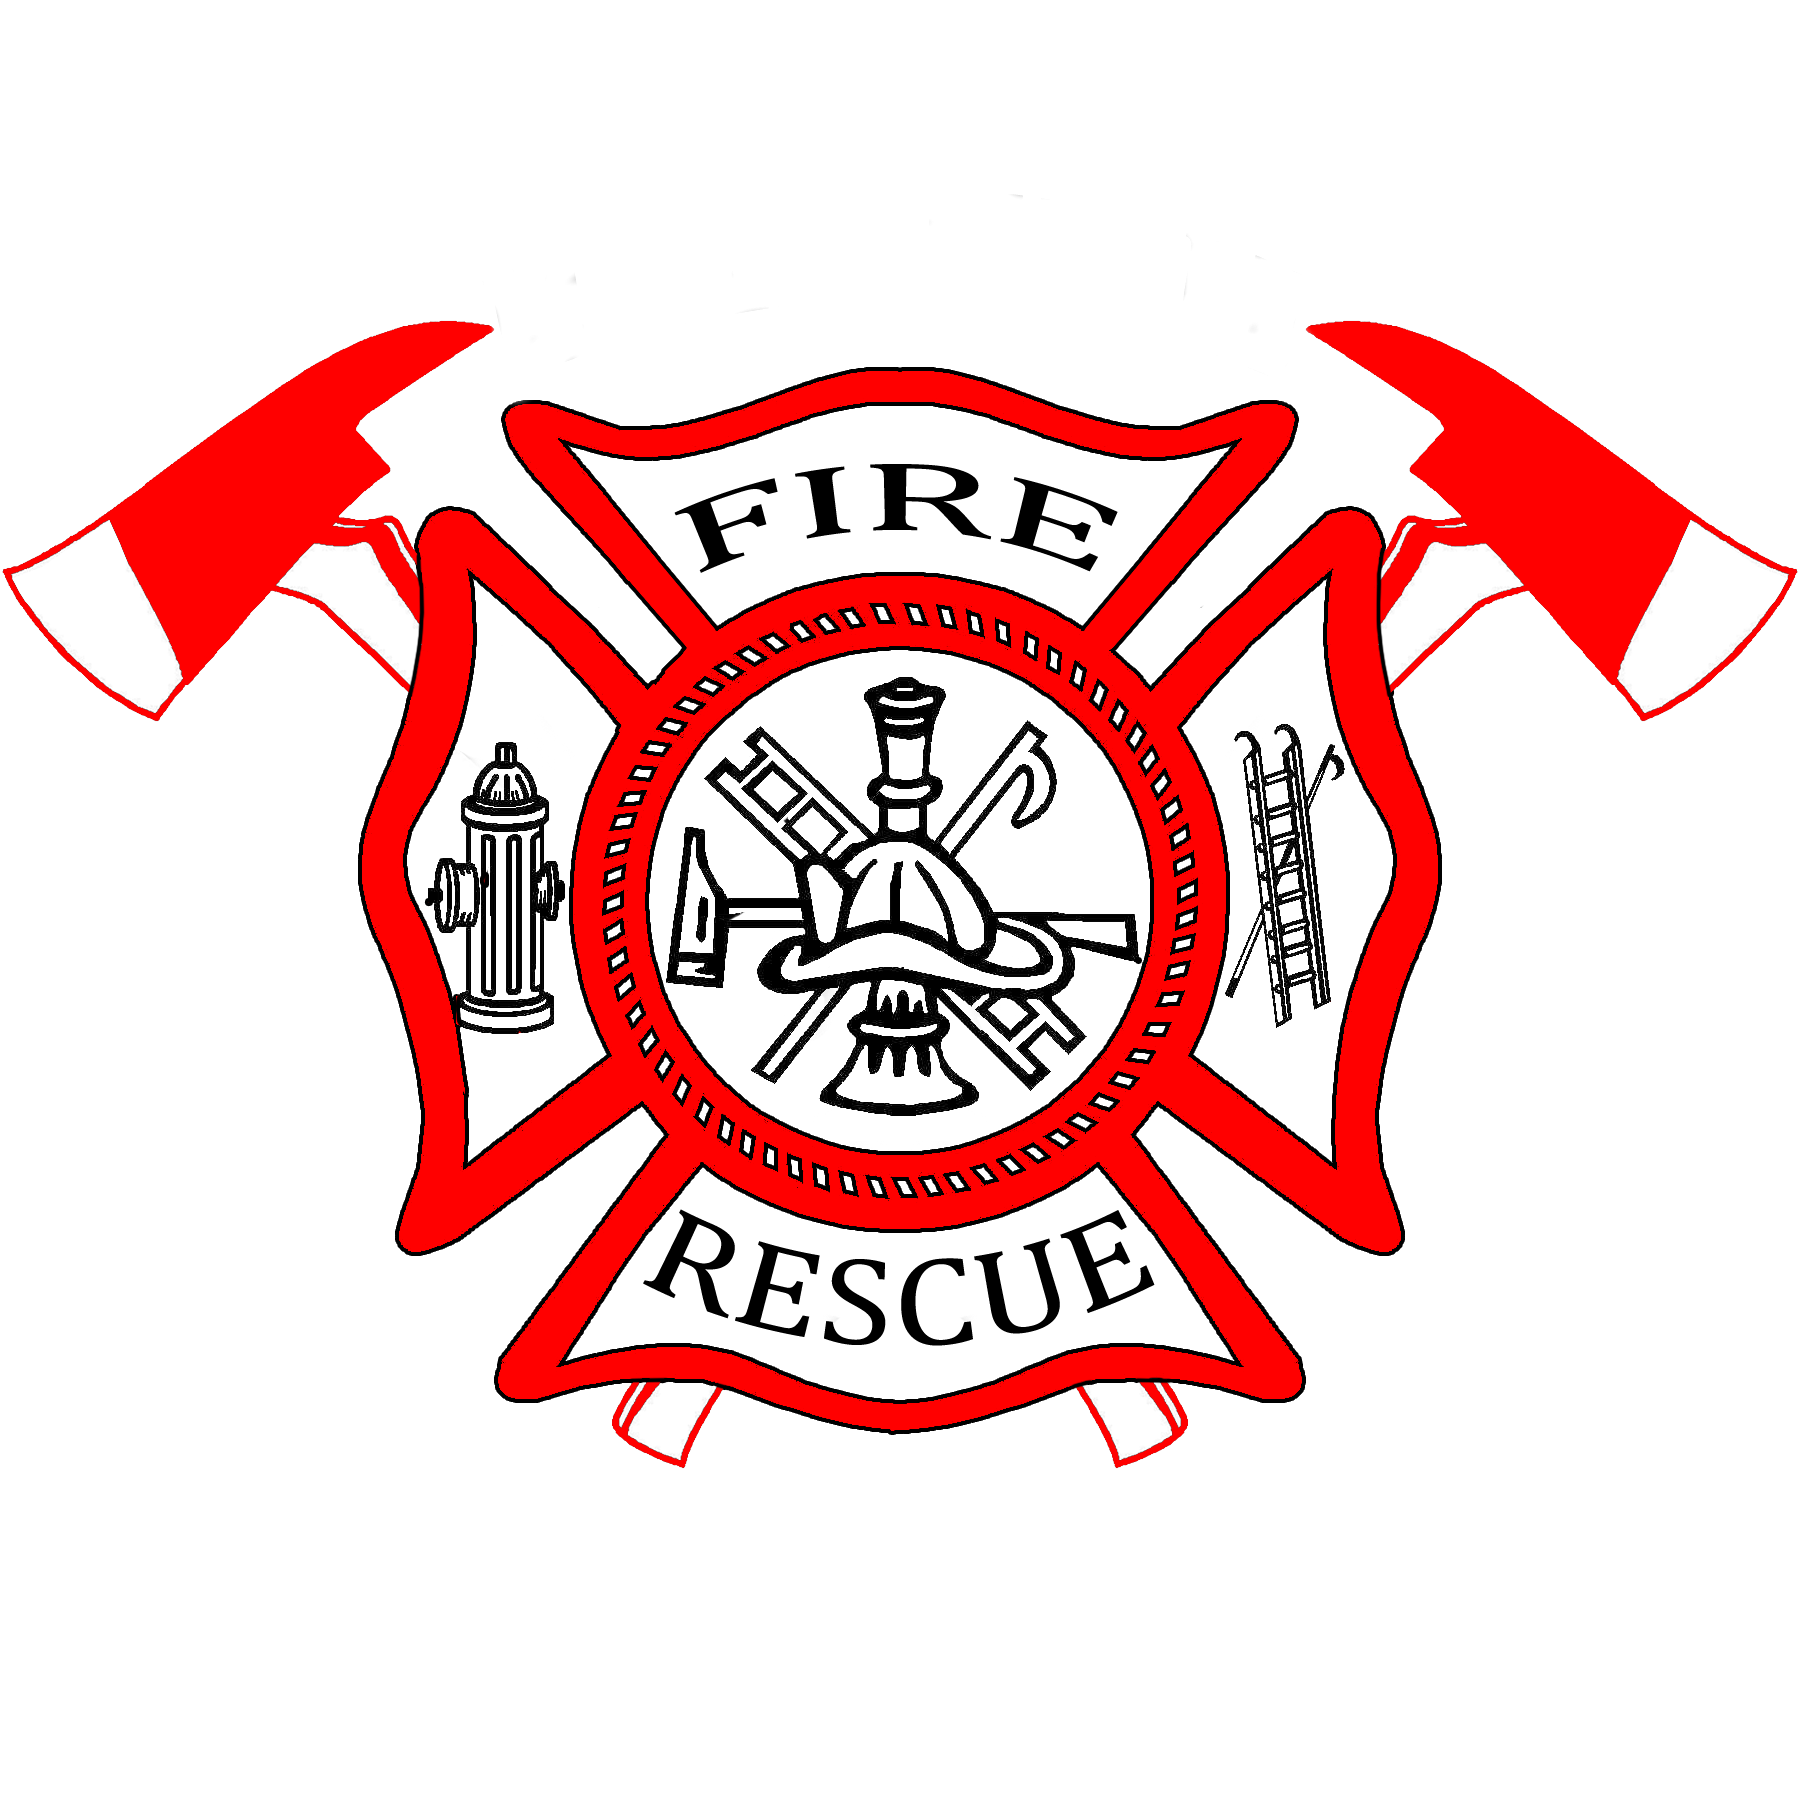 Fire Dept Symbol Image collections - meaning of text symbols jpg library stock